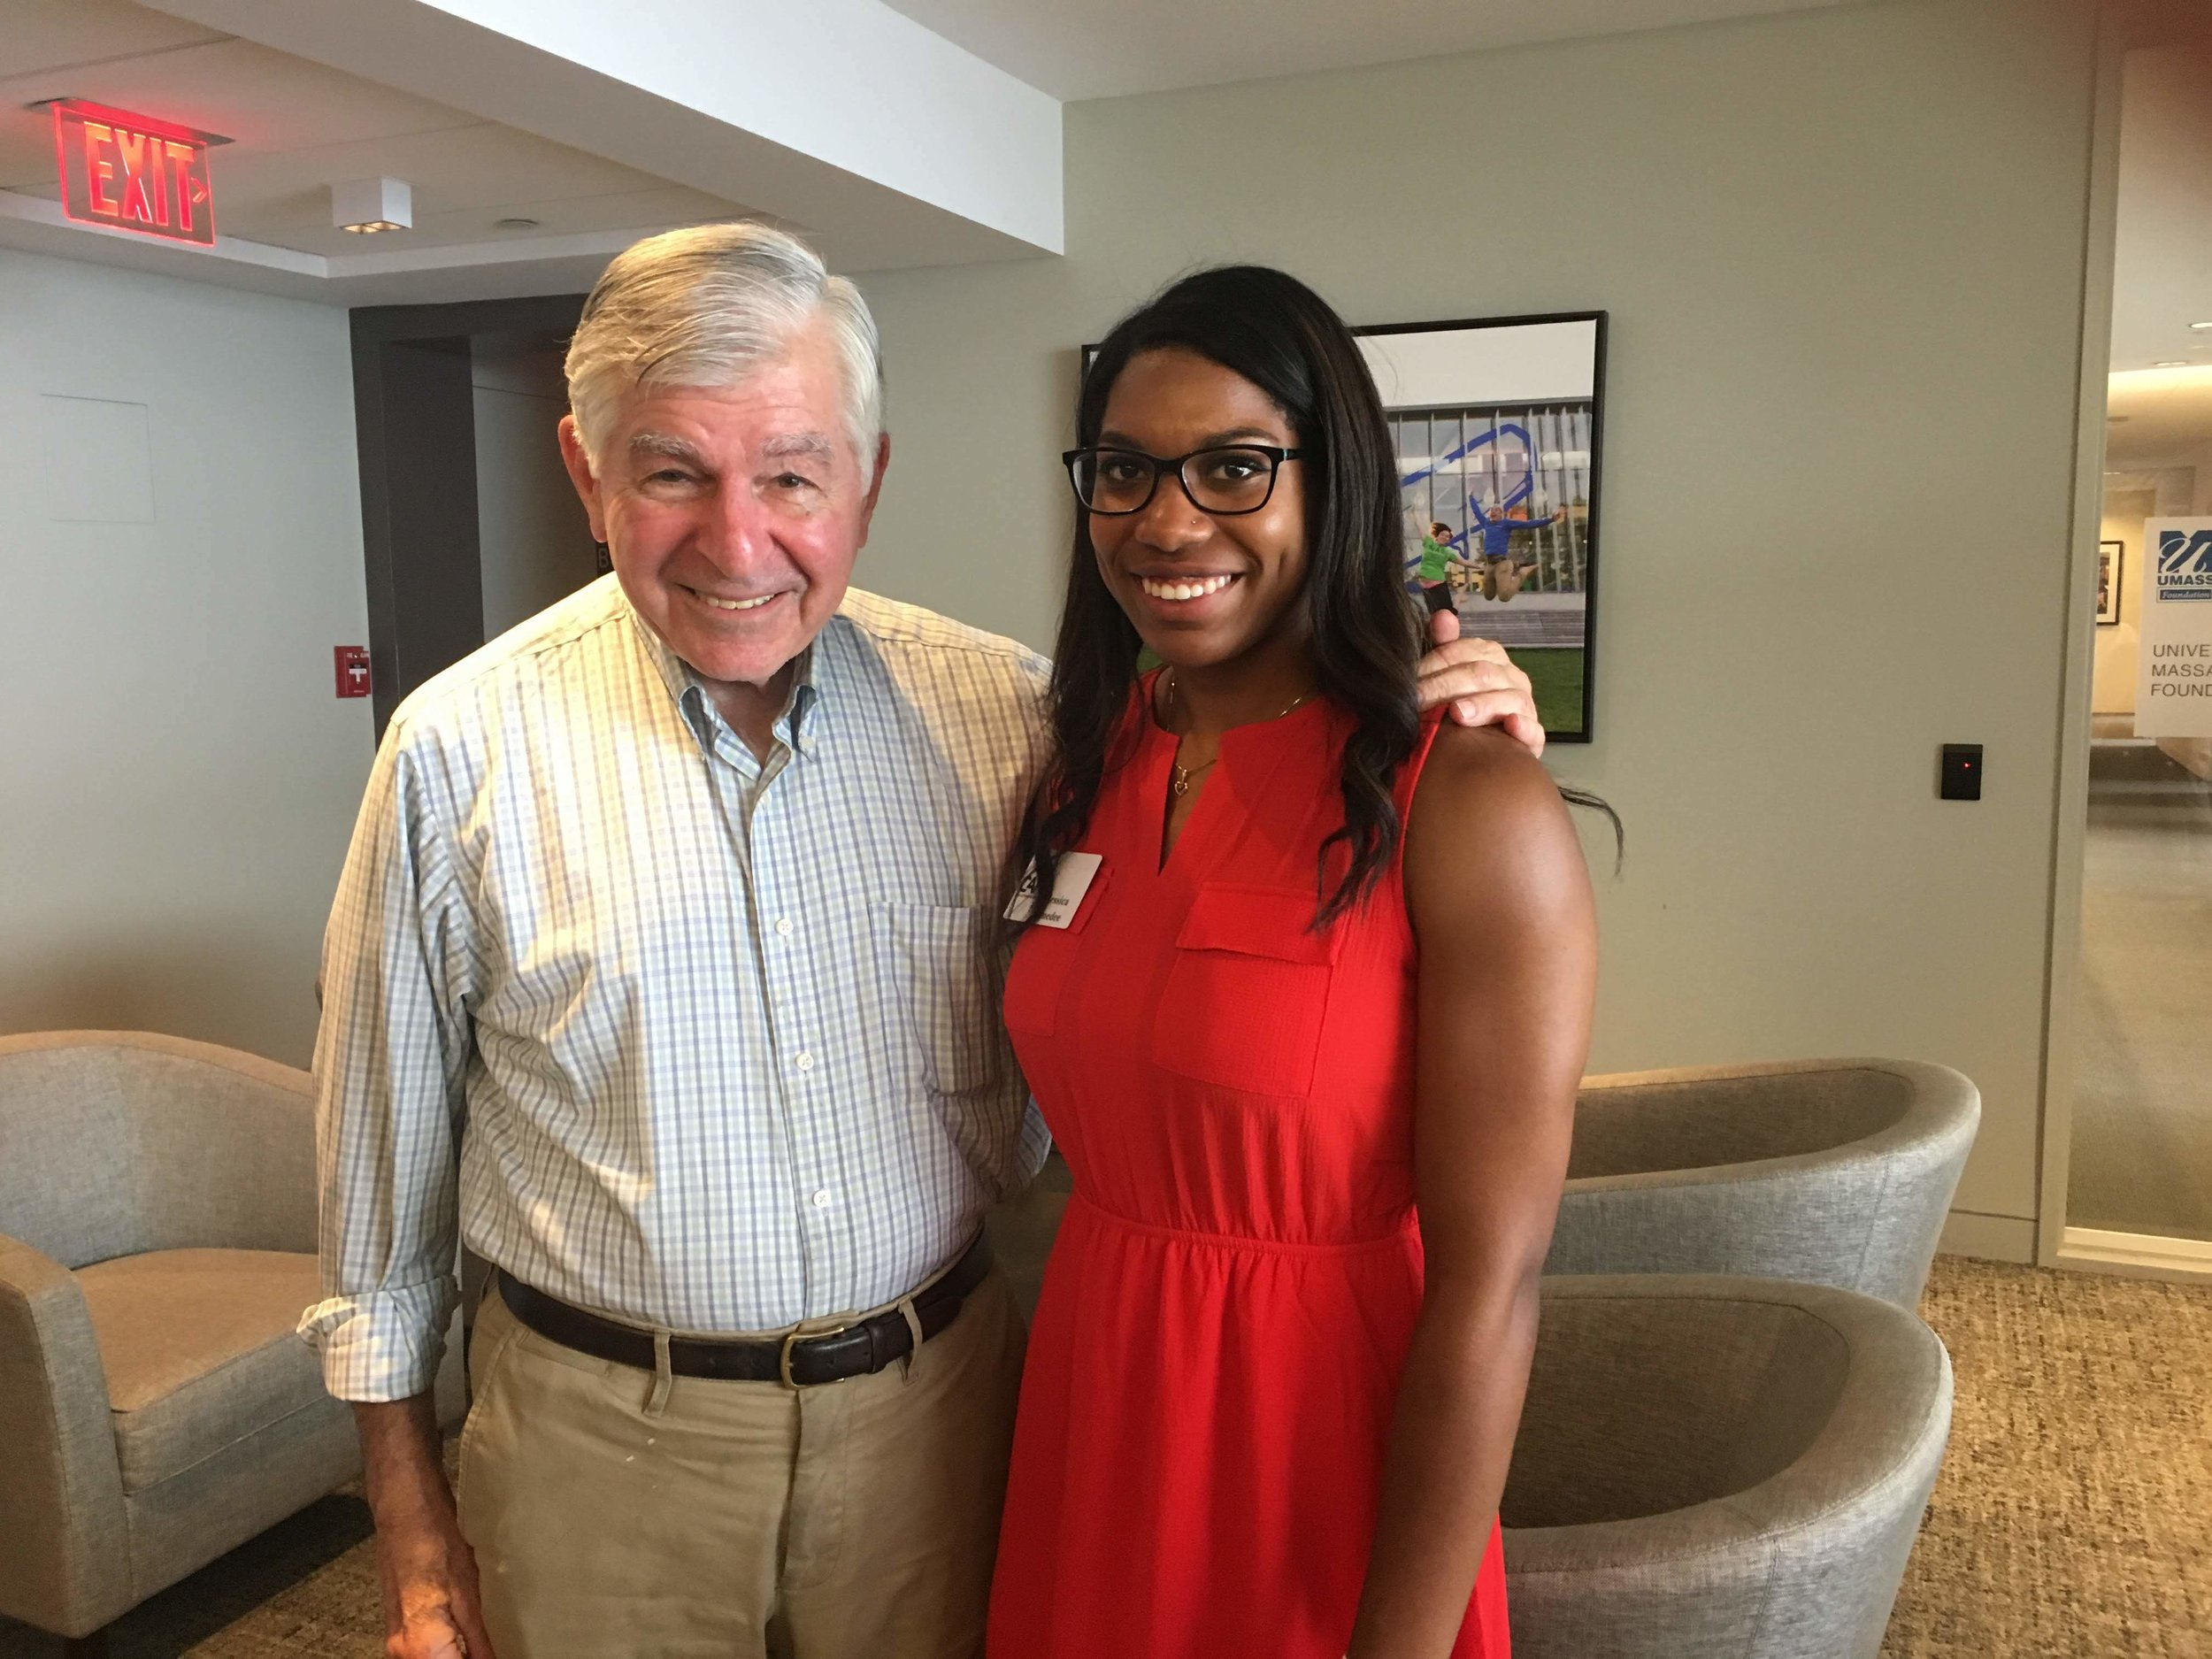 Former Governor and Presidential Candidate Michael Dukakis with UMass Lowell Fellow, Jessica Amedee on June 5th